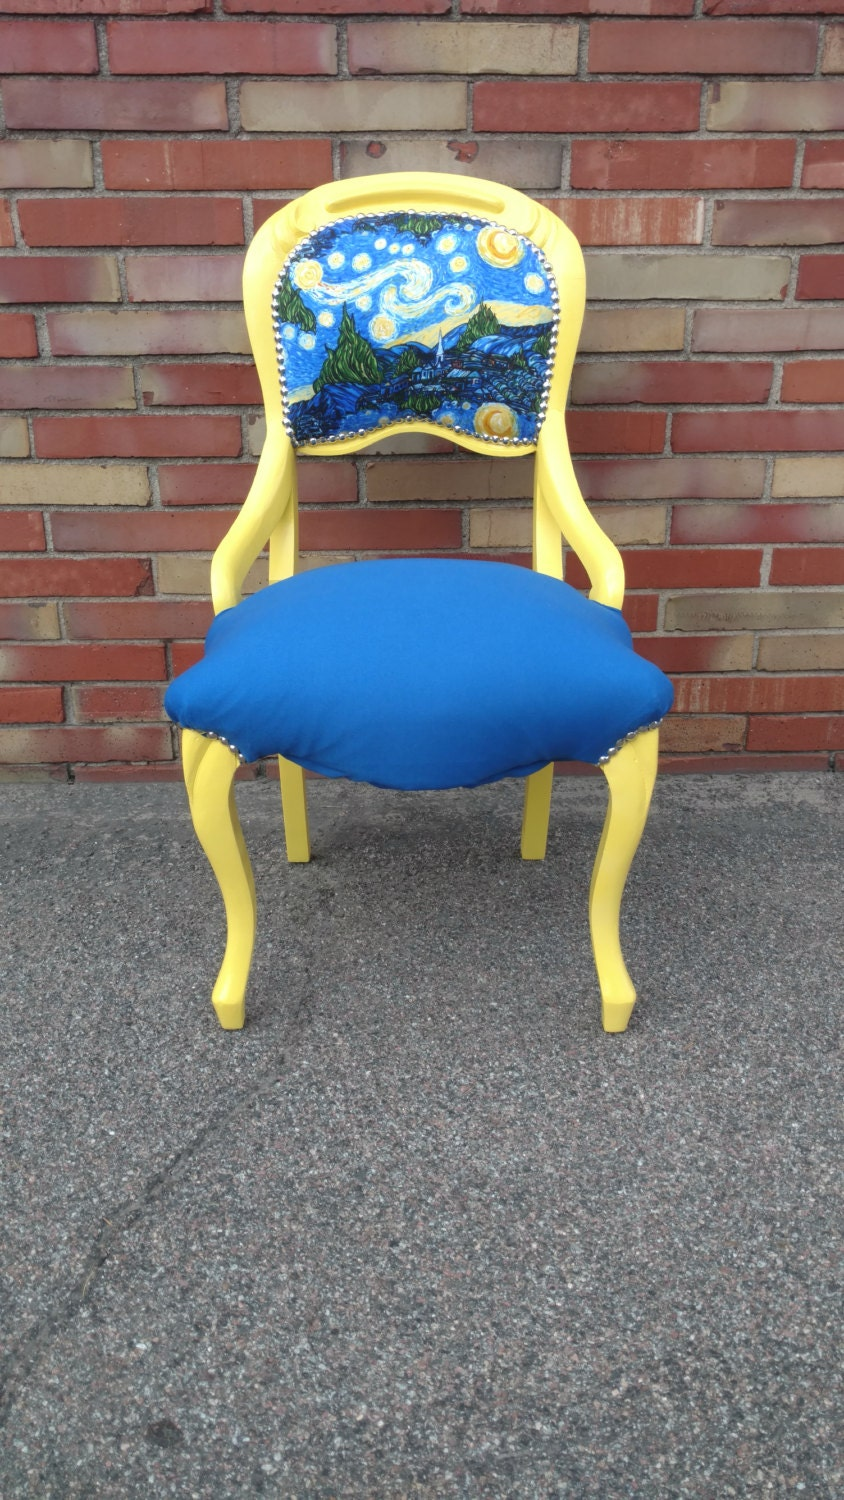 & Van Gogh Starry Night Accent Chair